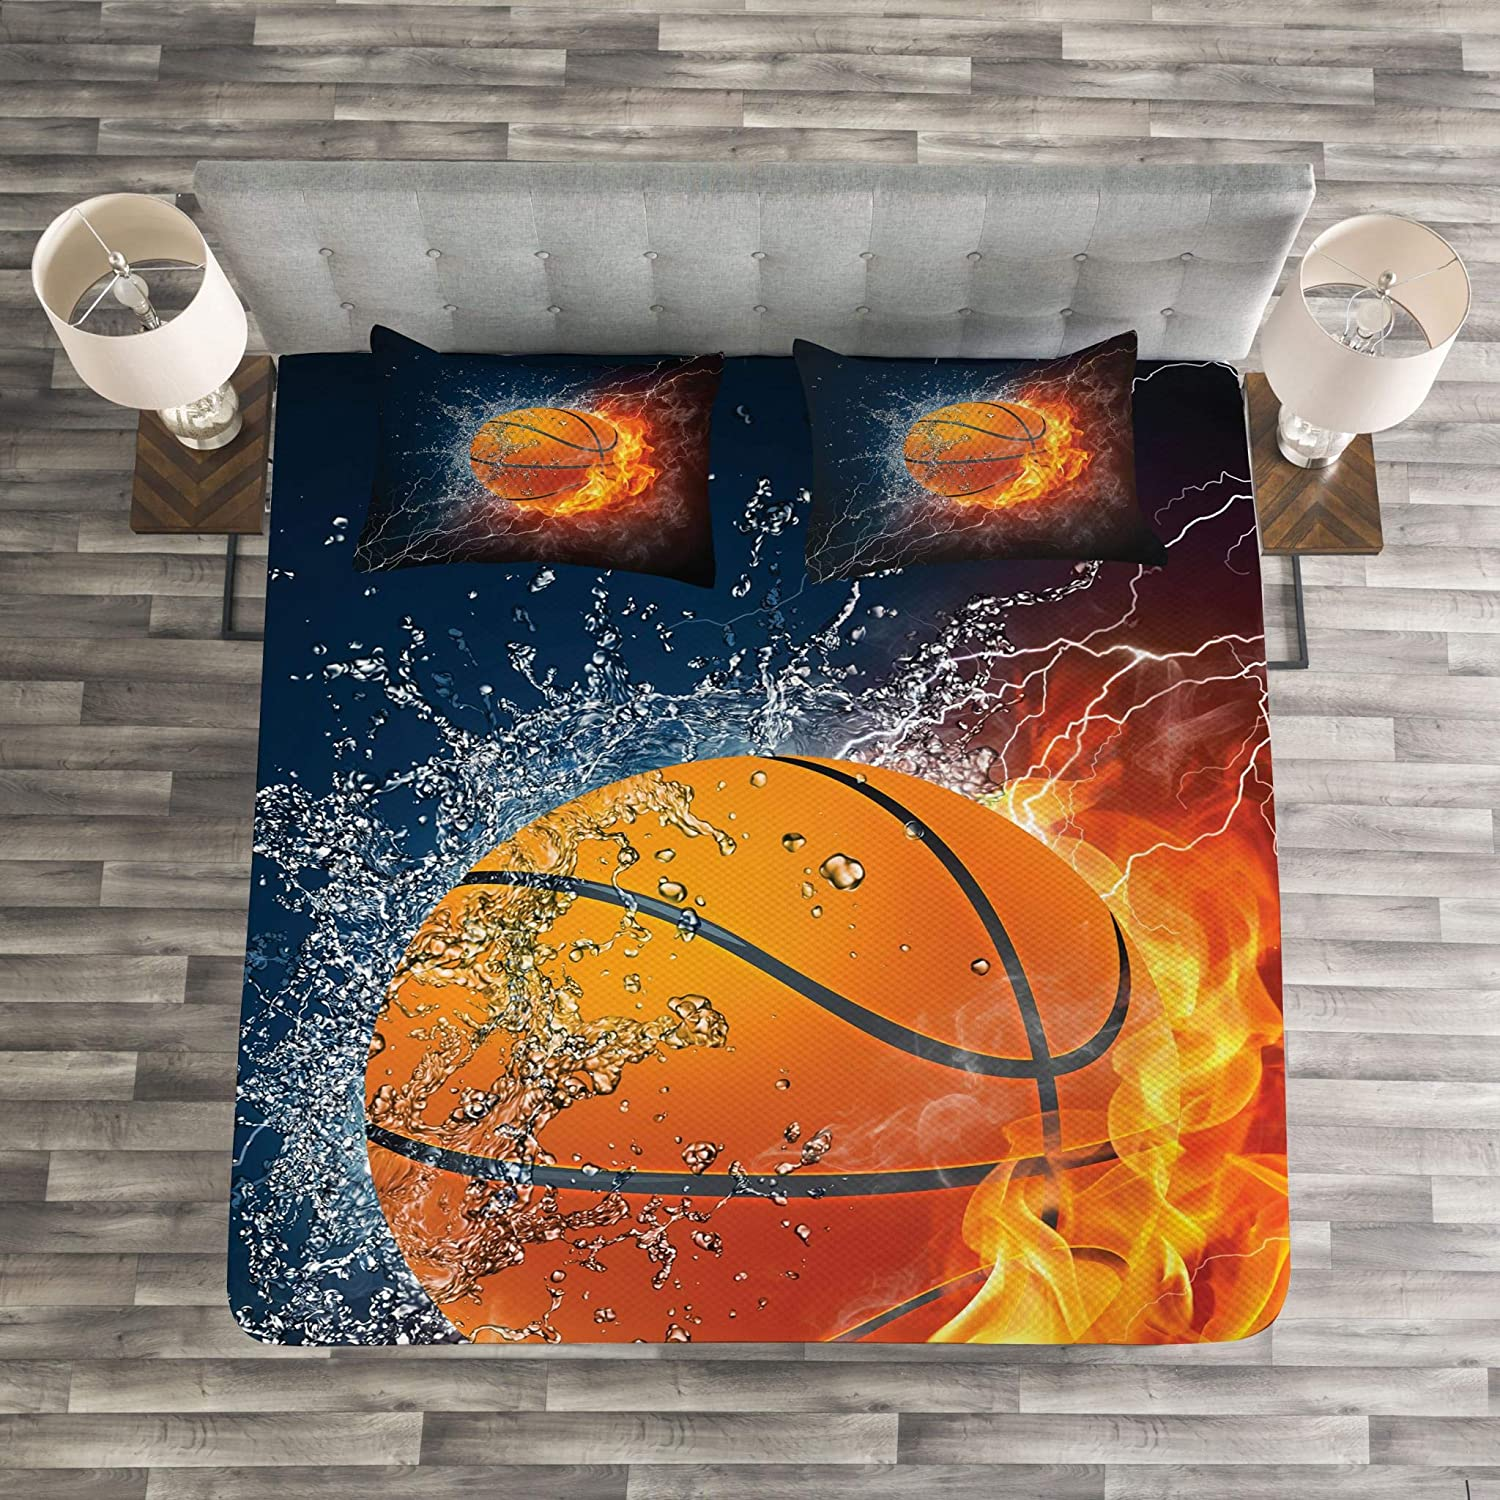 Basketball Ball on Fire and Water Flame Splashing Thunder Lightning Dark Blue Orange Burgundy Decorative Quilted 3 Piece Bedspread Set with 2 Pillow Shams Lunarable Sports Coverlet Set Queen Size